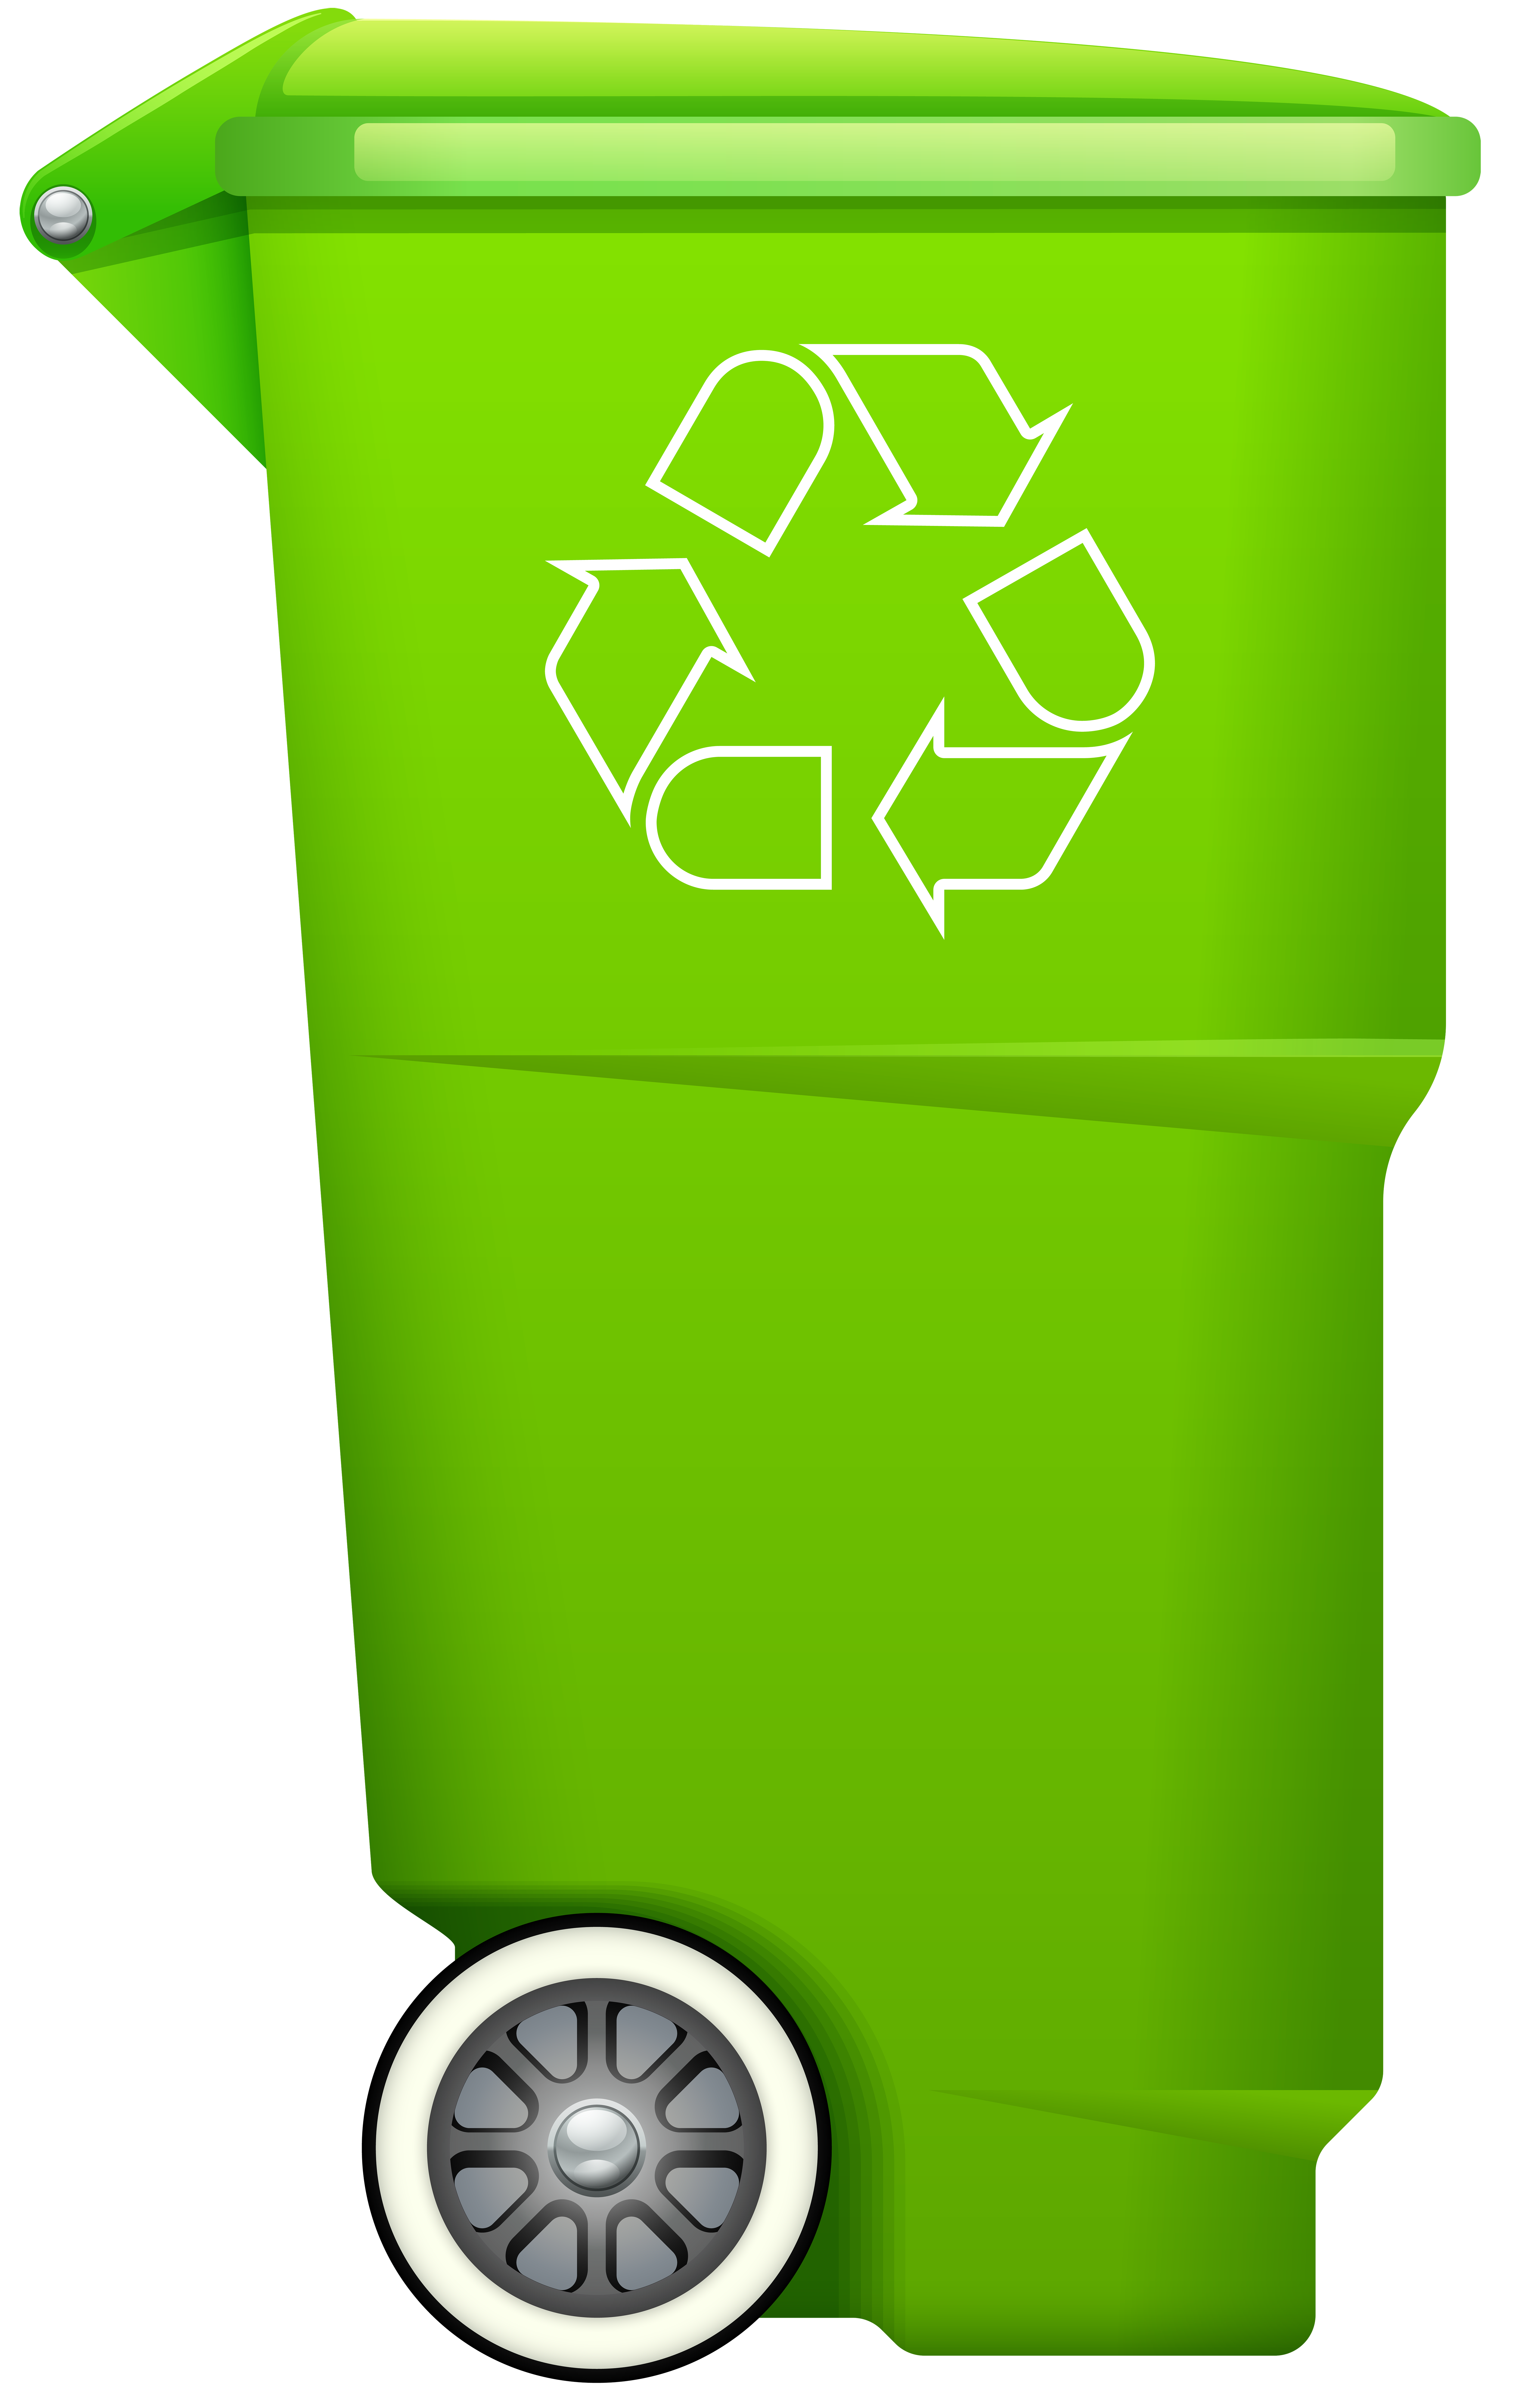 clip art royalty free stock Trashcan clipart recycling box. Garbage trash bin with